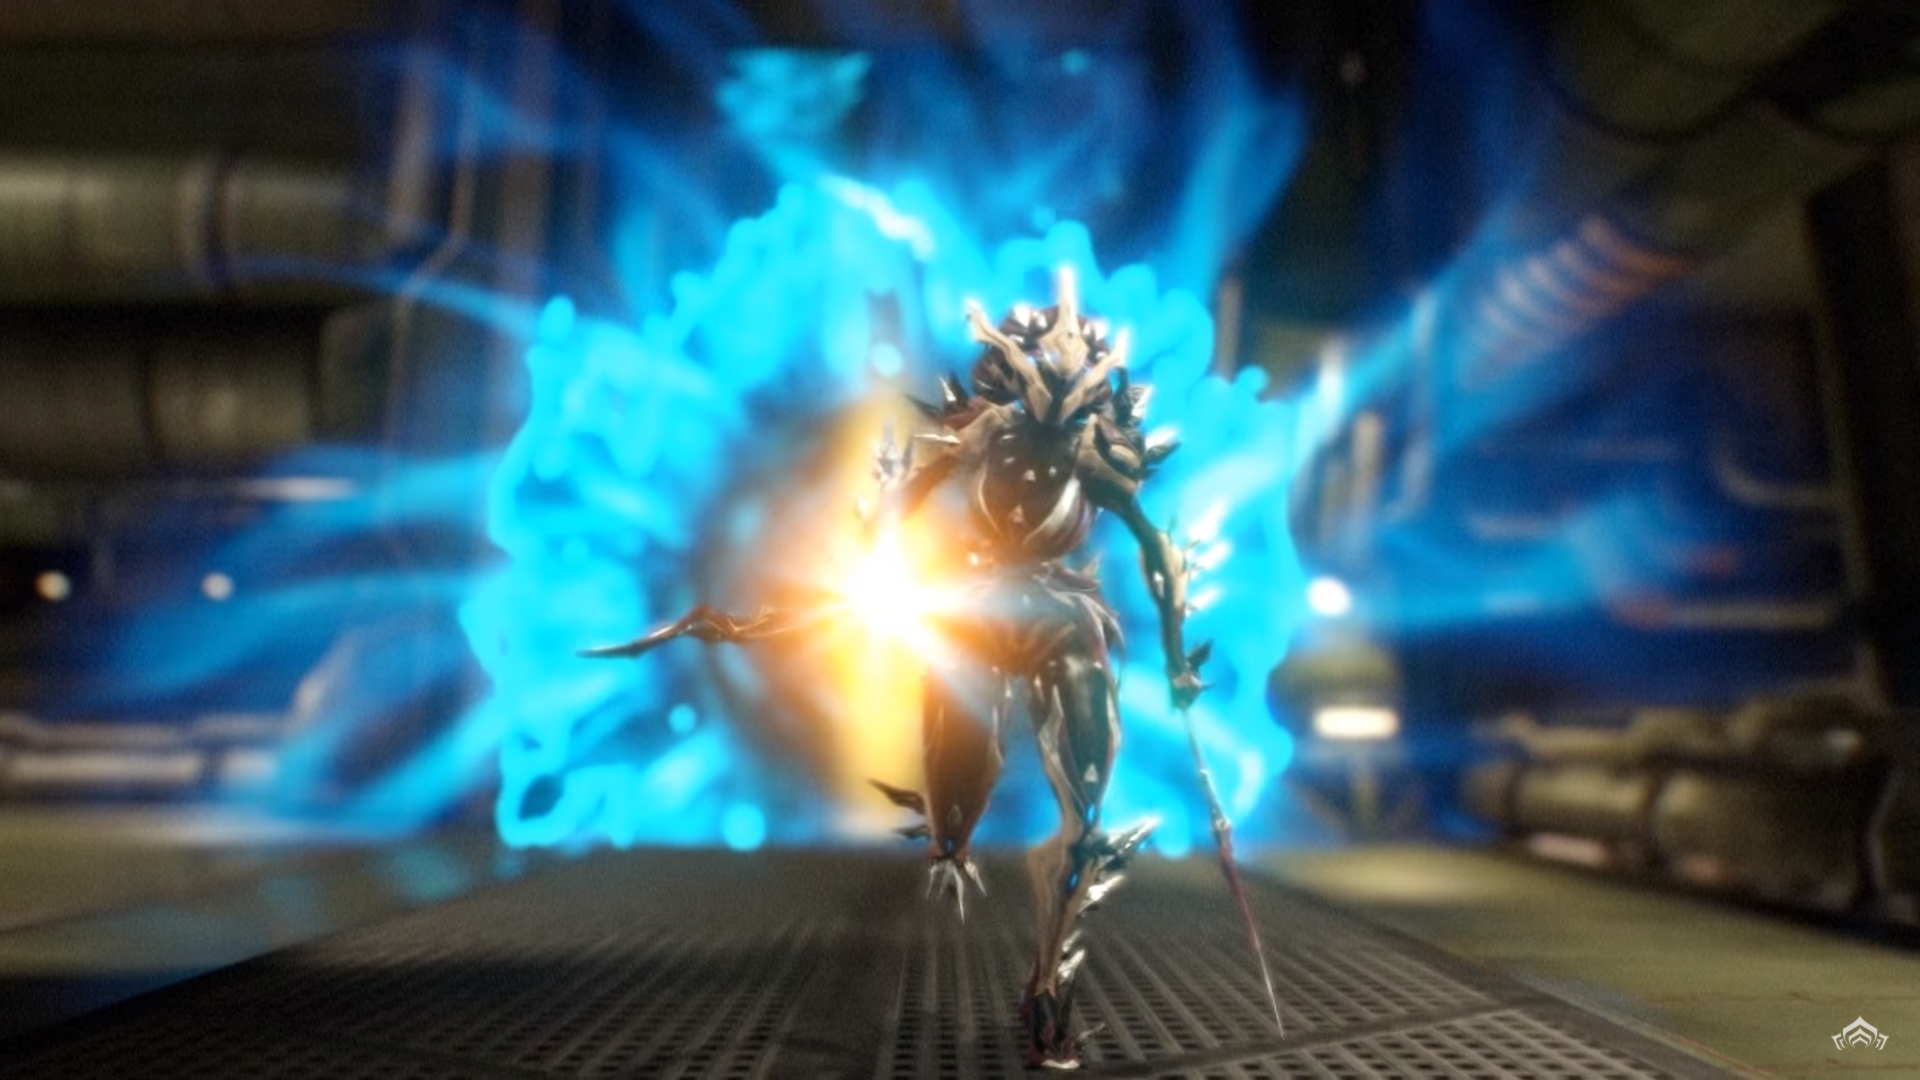 Warframe gets new frame and mode